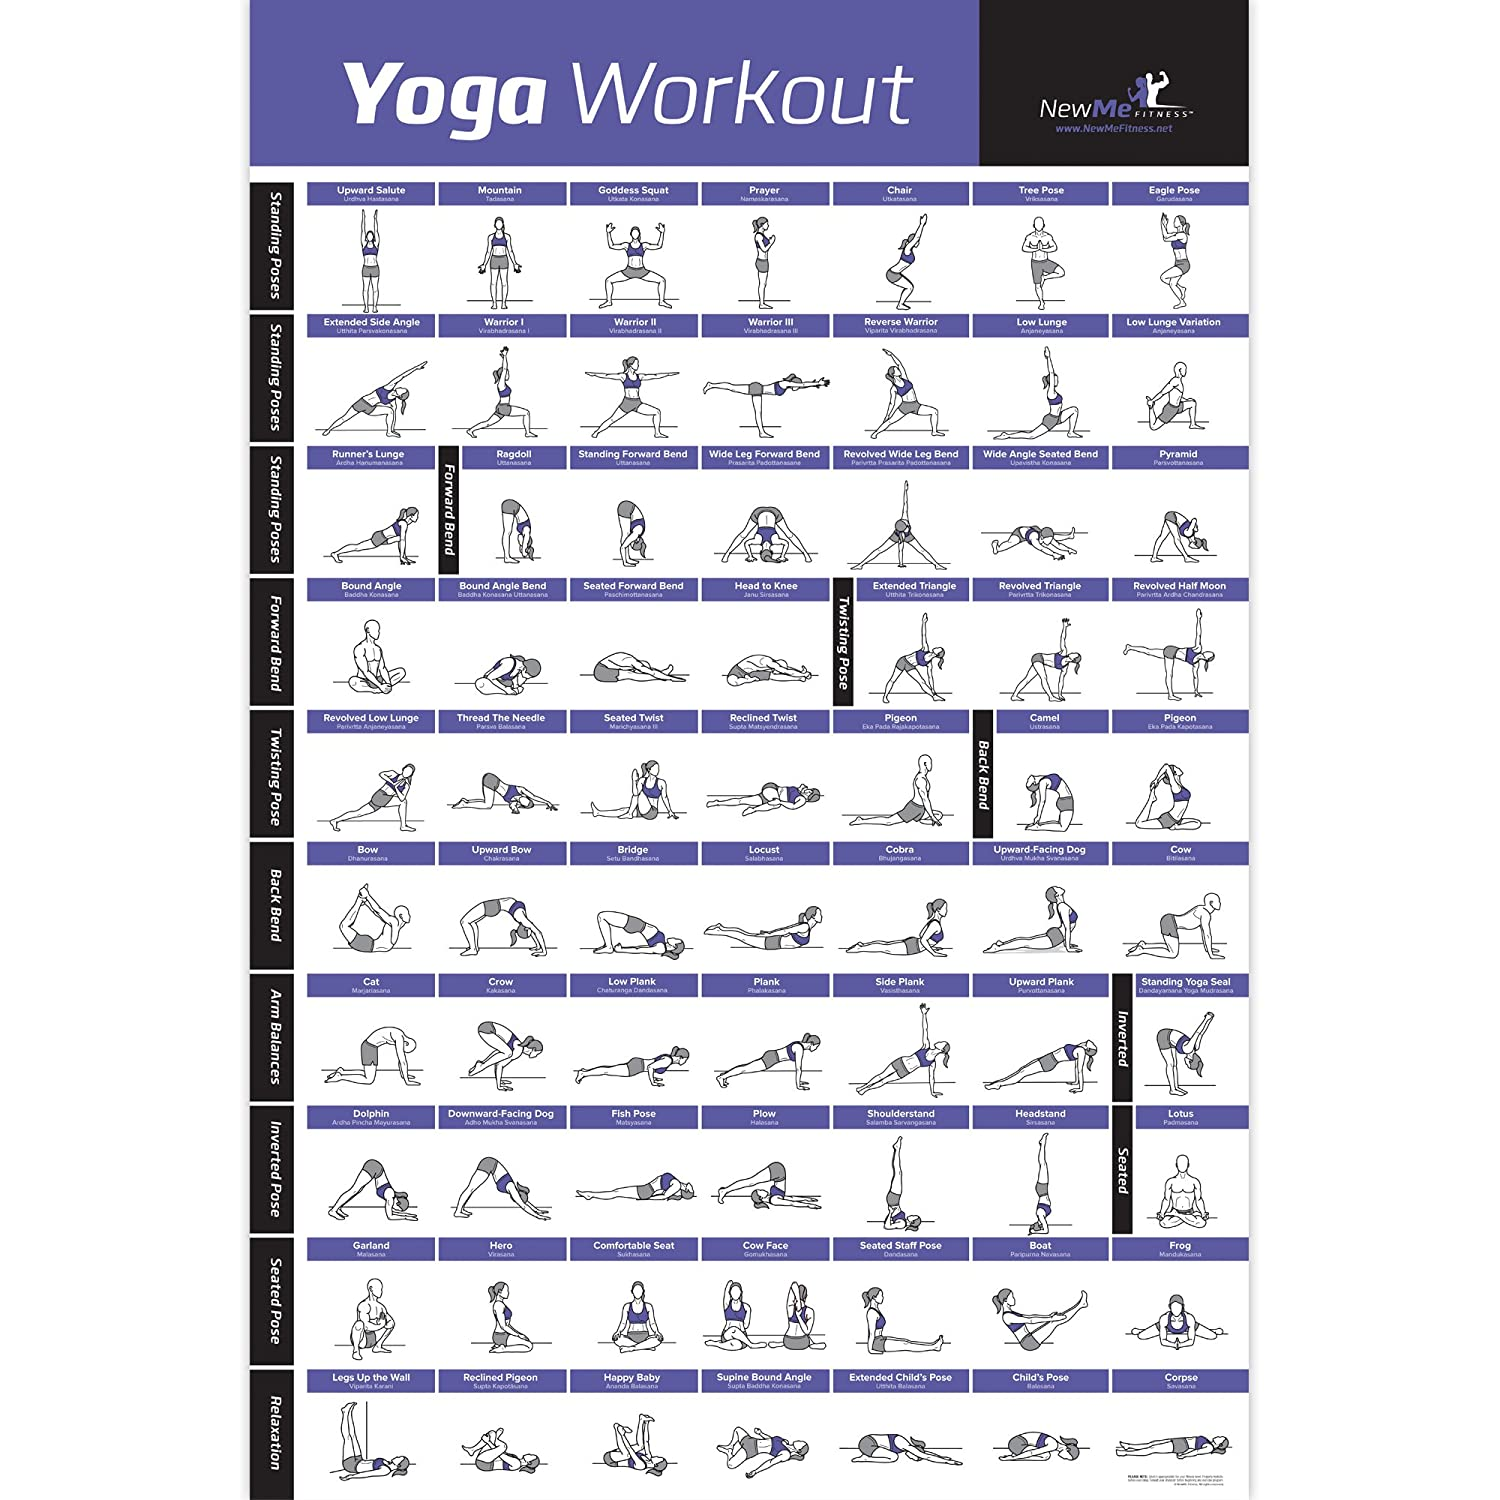 image about Bikram Yoga Poses Chart Printable identified as NewMe Exercise Yoga Pose Conditioning Poster Laminated Quality Academic Newcomers Chart for Sequences Move - 70 Critical Poses - Sanskrit